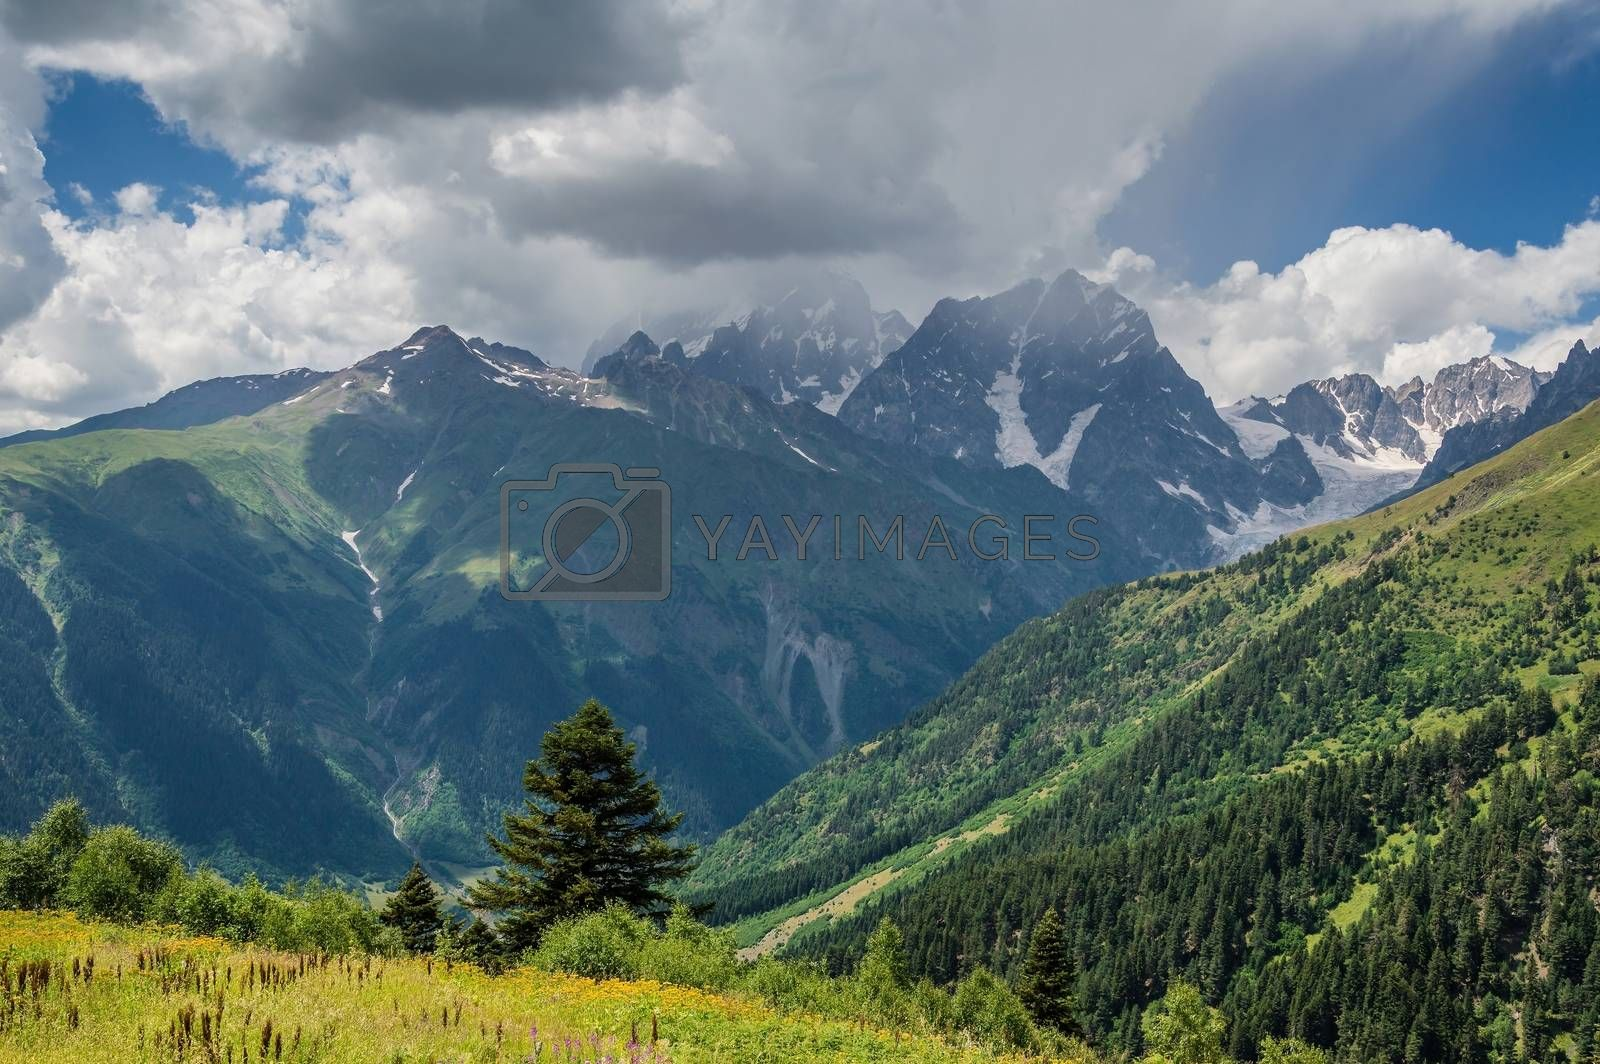 Royalty free image of Landscape with mountain by firewings